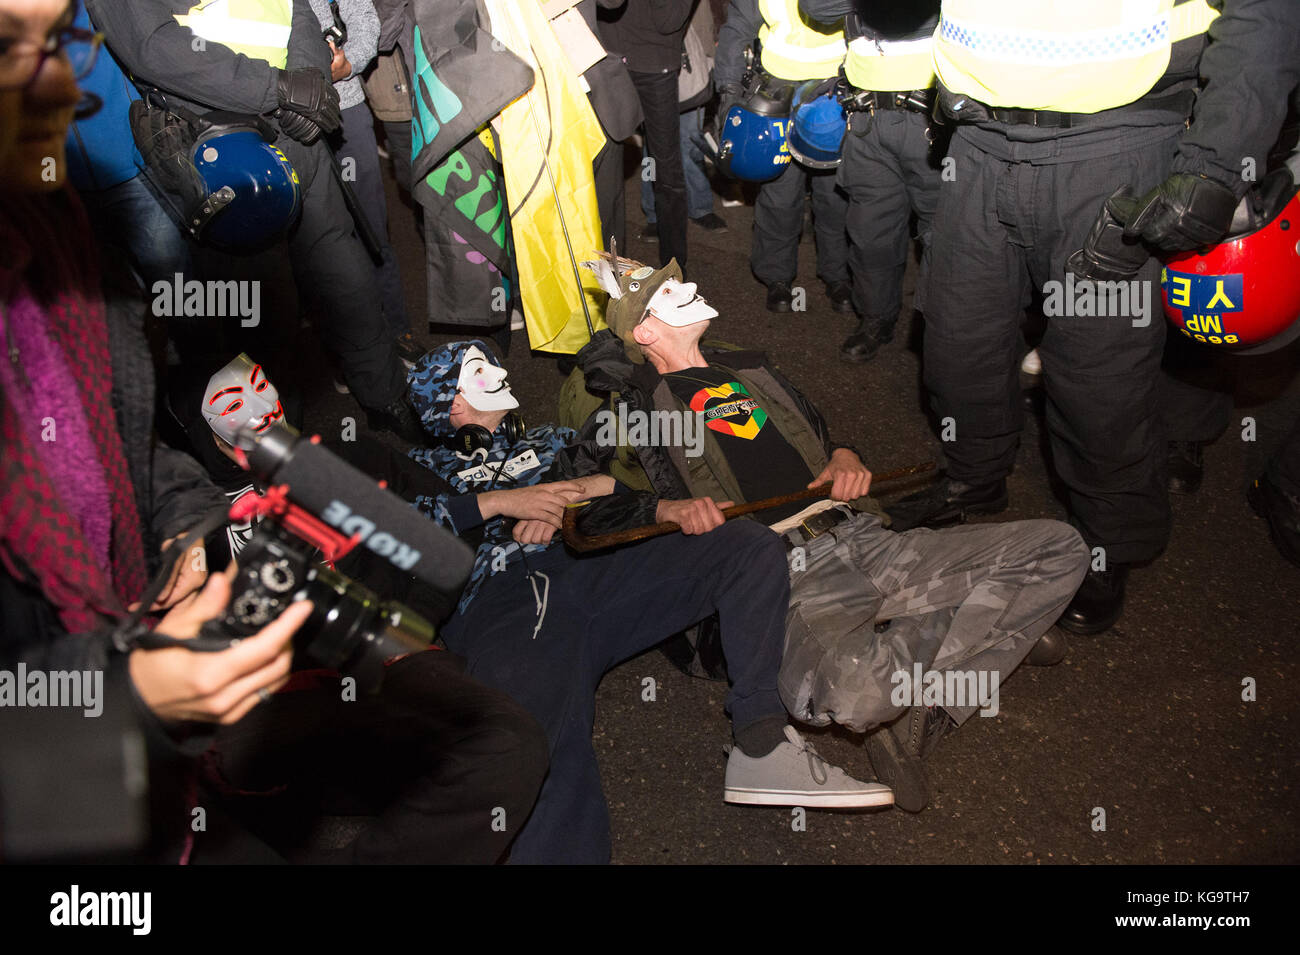 London, United Kingdom. 05th Nov, 2017. Million Mask March 2017 takes place in central London. Protesters block Stock Photo